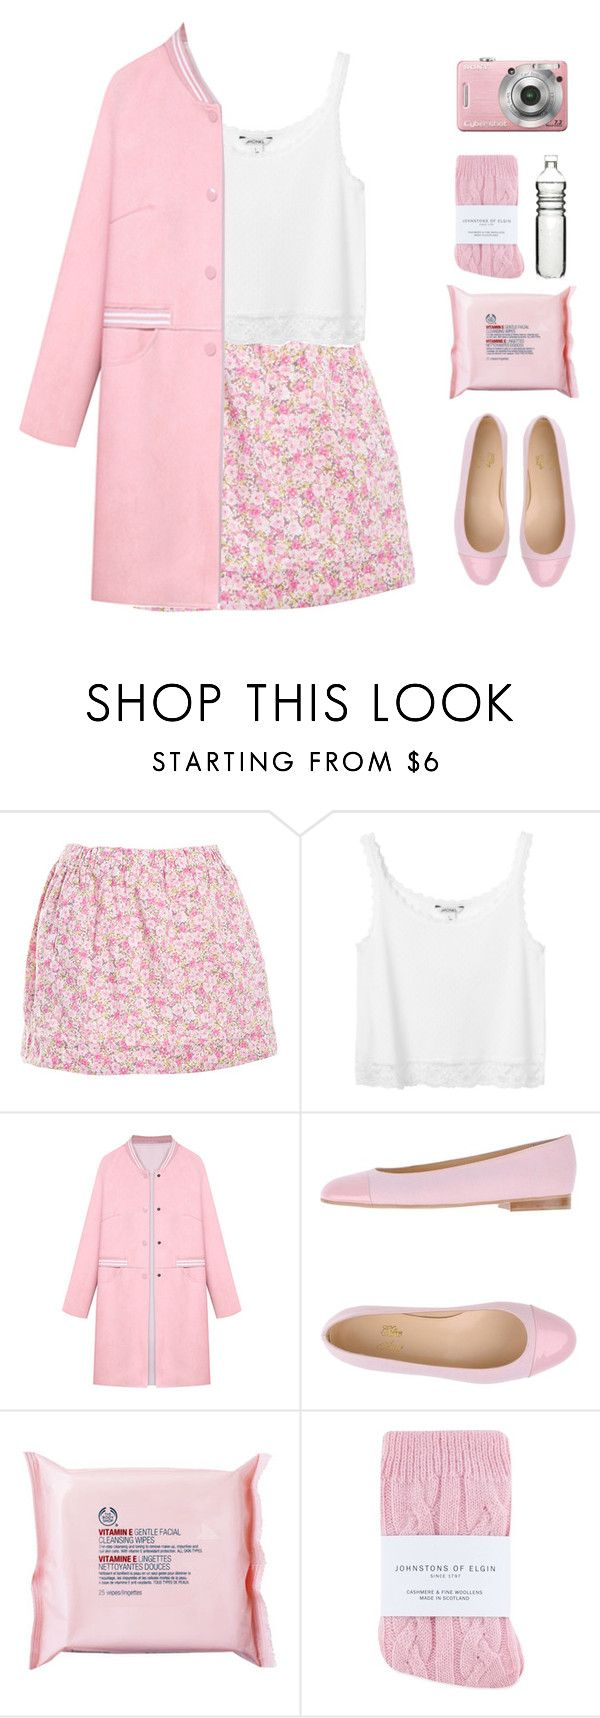 """""""Pastel Trench"""" by via-m ❤ liked on Polyvore featuring J.Crew, Monki, WithChic, Chérie Amour, The Body Shop, Johnstons, Dot & Bo, women's clothing, women's fashion and women"""